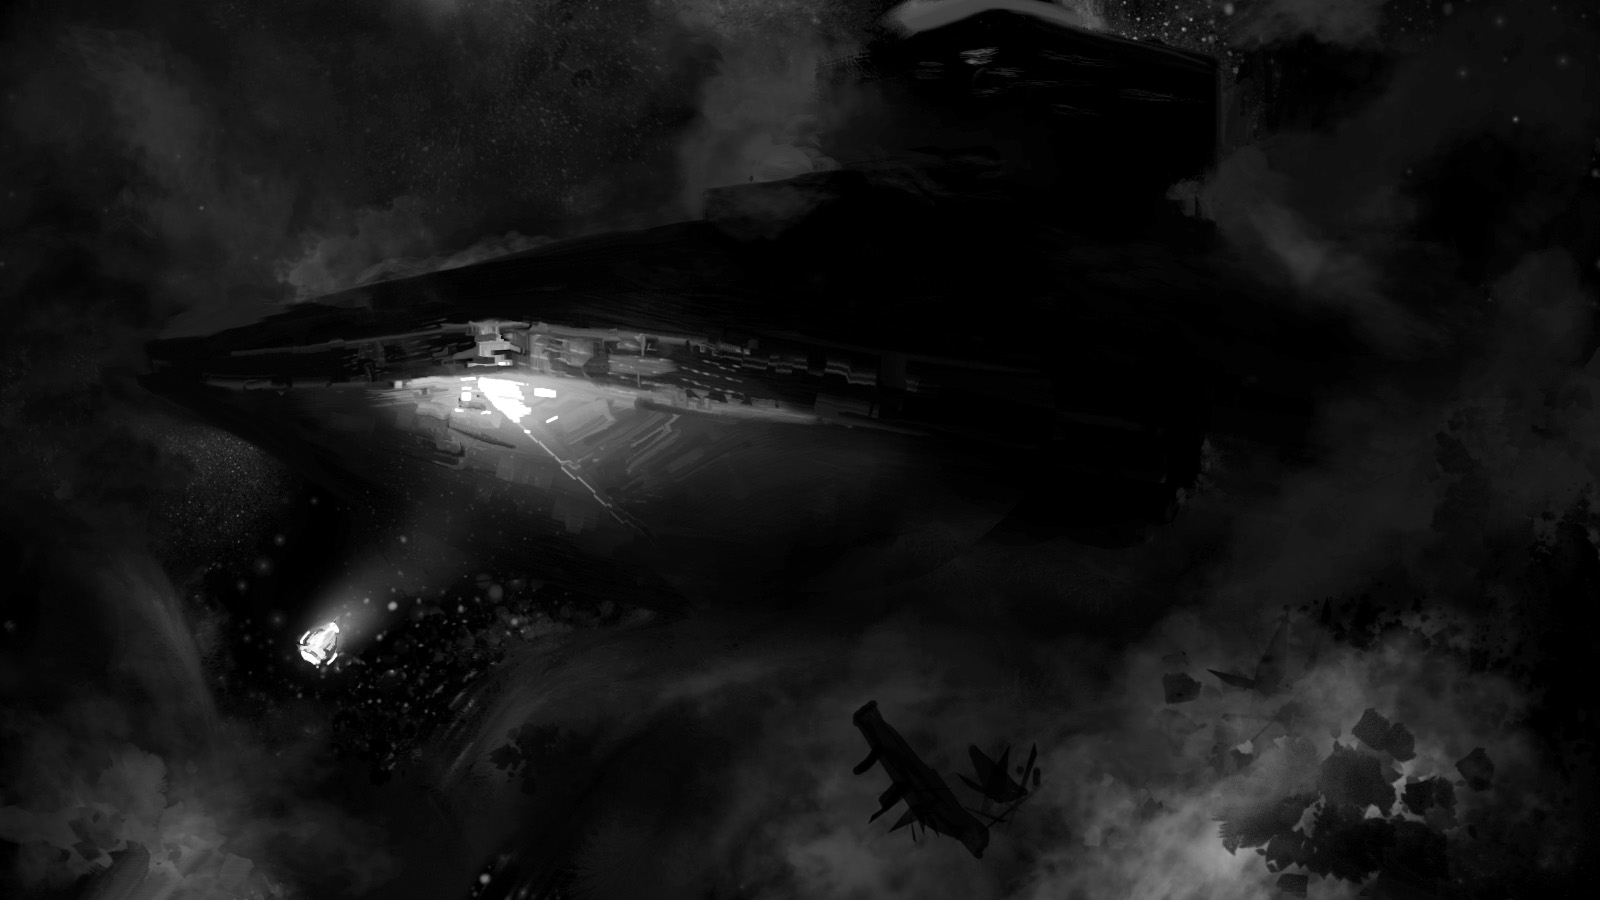 The discovery of The Inquisitor, a derelict Star Destroyer lost within a dark nebula. After clearing out one of the two warring Imperial factions they encountered inside, our crew set the ship up as a safe port for smugglers and rebels.